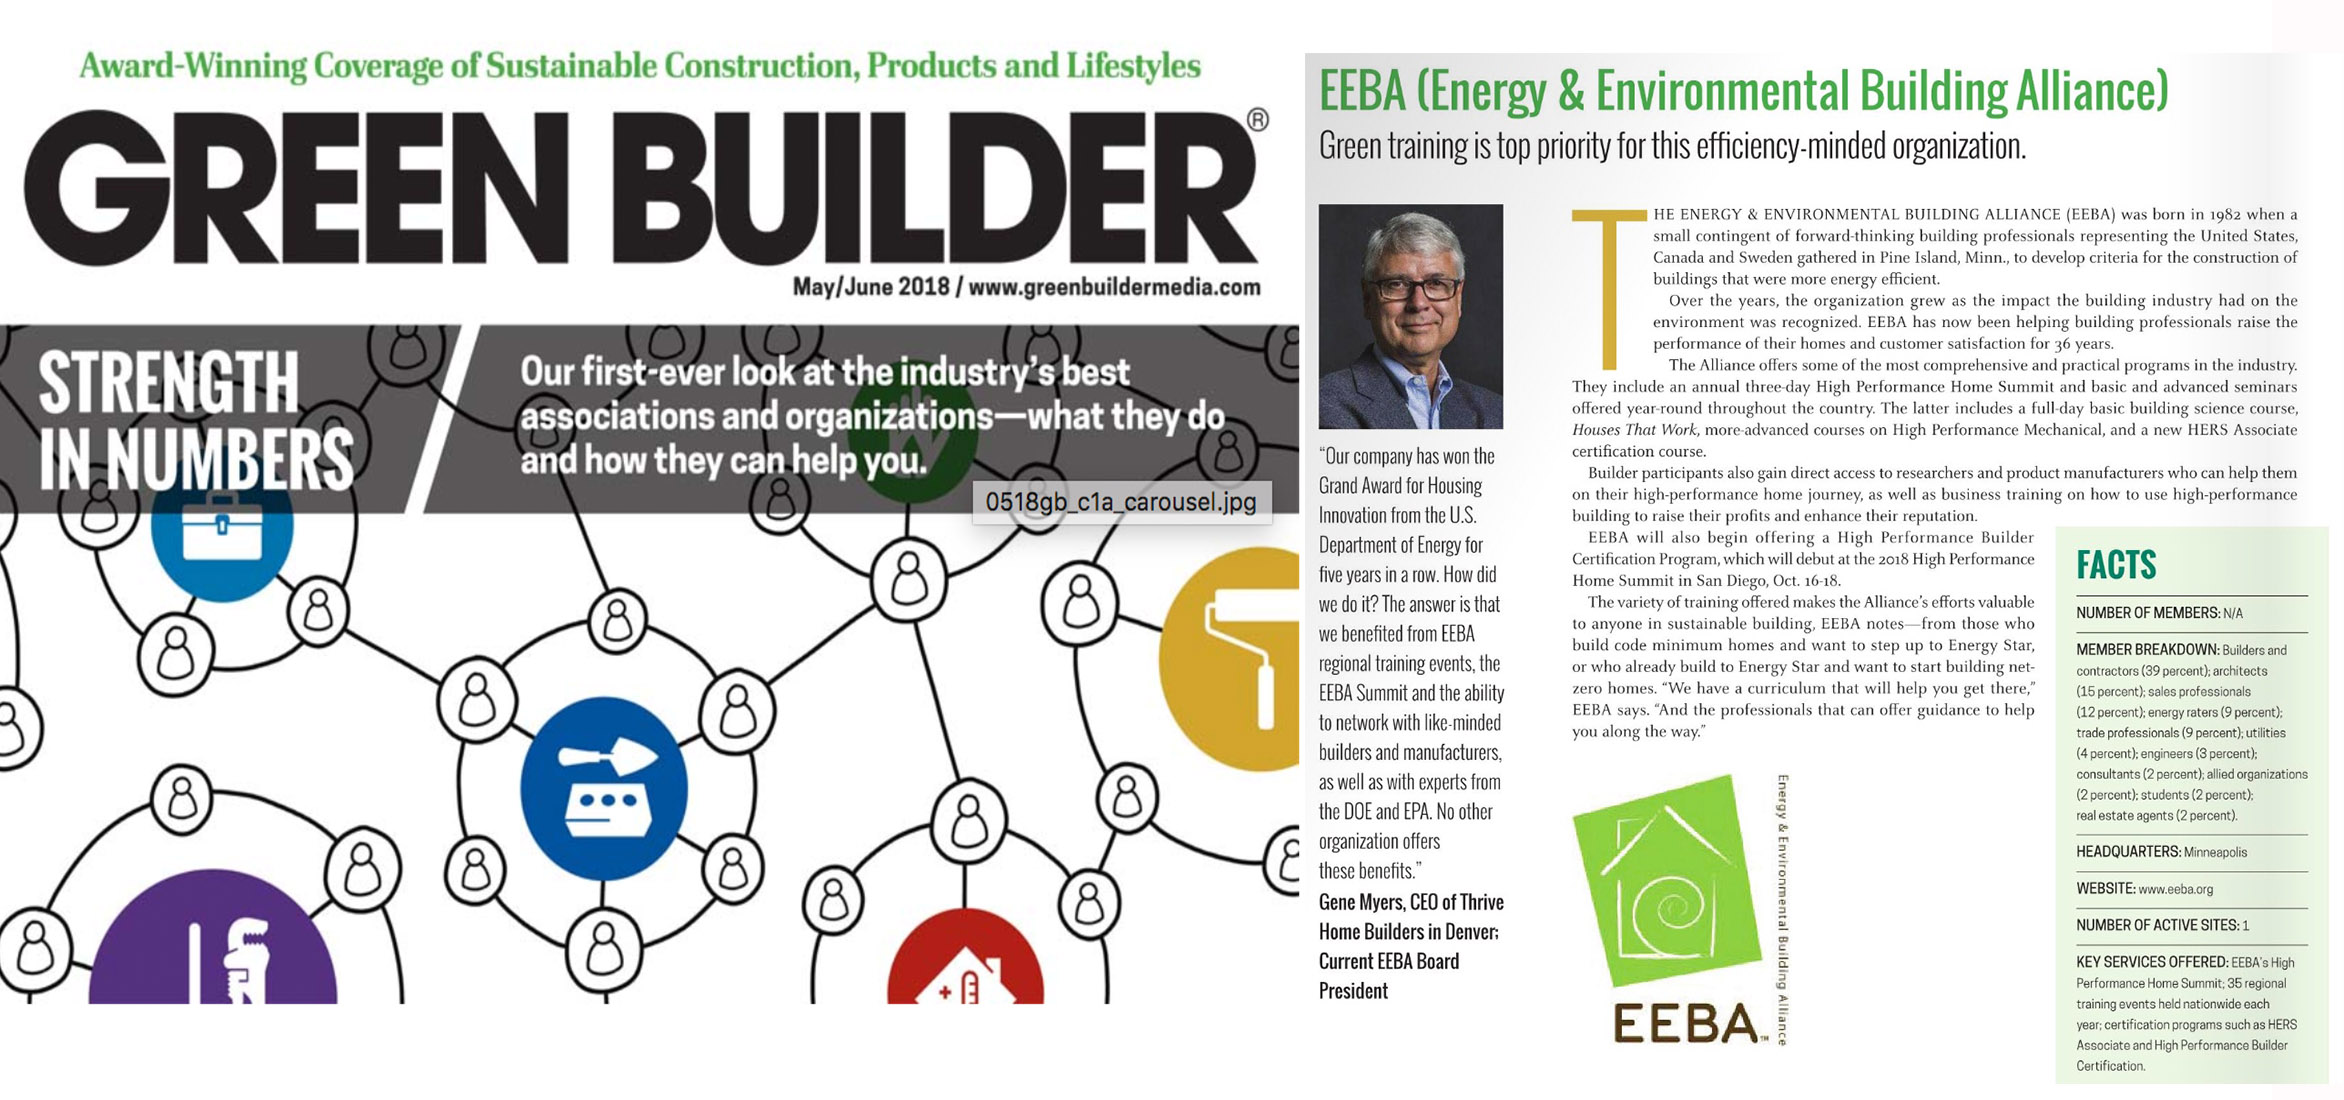 EEBA Named a Leading Industry Association